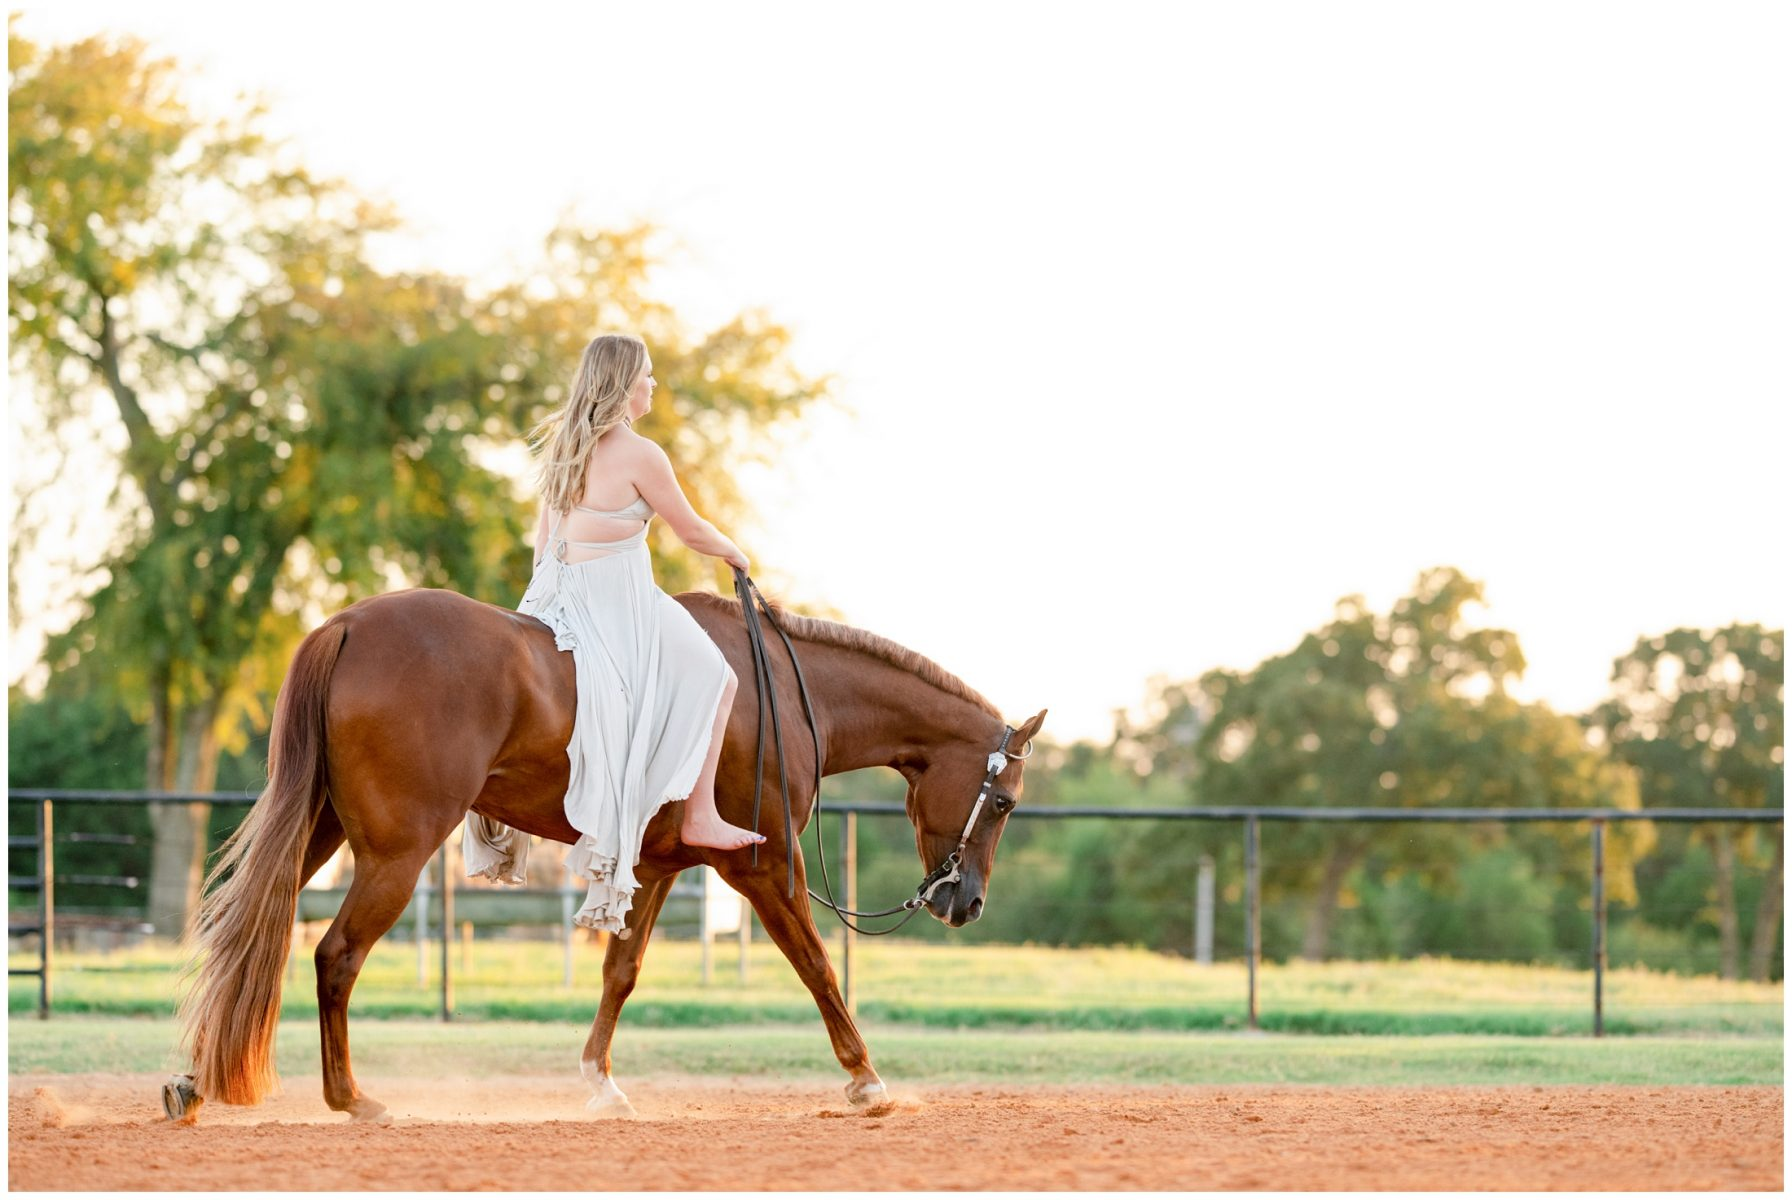 http://kirstiemarie.com/wp-content/uploads/2019/10/Millie-Anderson-and-Only-After-You-Vickery-Performance-Horses-Pilot-Point-Texas-AQHYA-Kirstie-Marie-Photography_0014-1.jpg